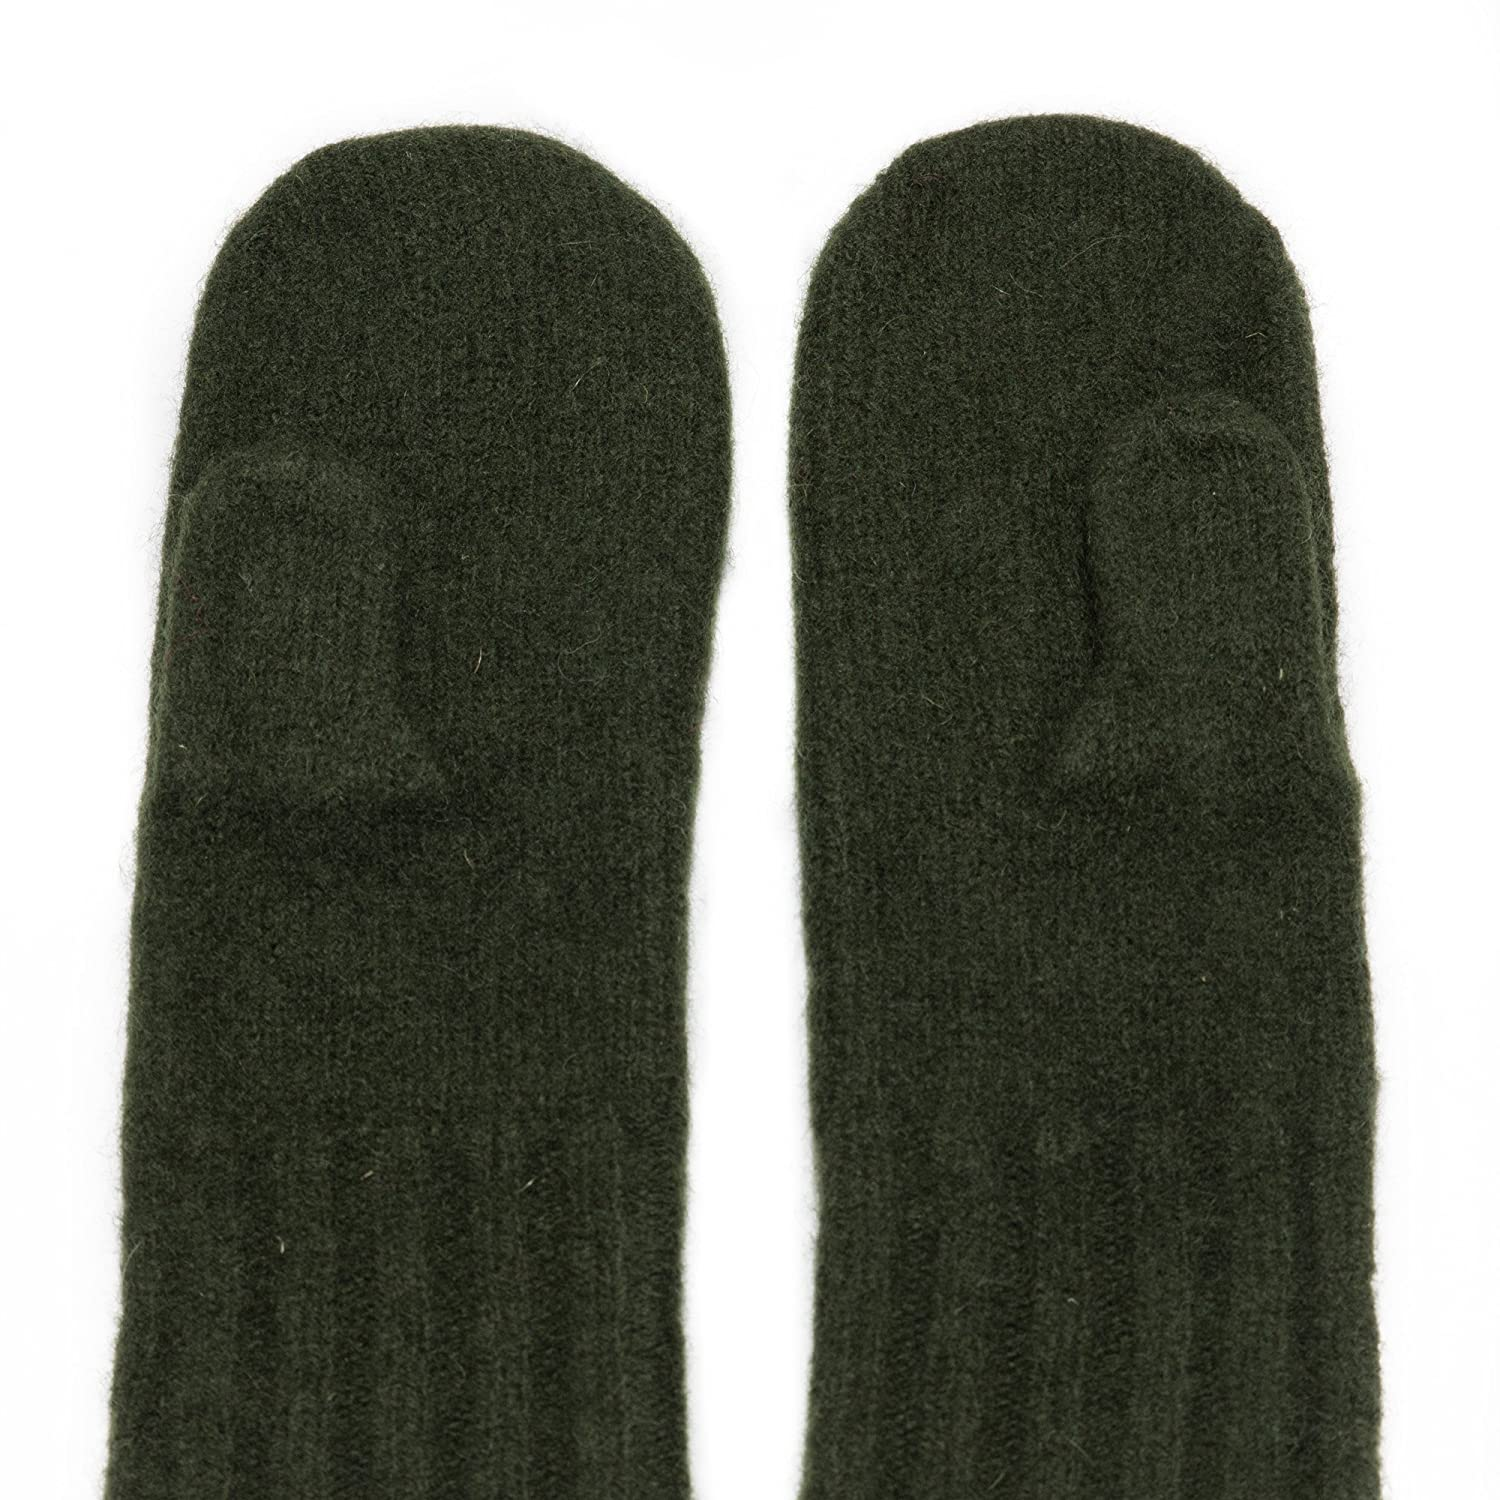 ff6d81ebc Dachstein Woolwear 100% Extra Warm Austrian Boiled Wool Alpine Mittens in  Many Vibrant Colors